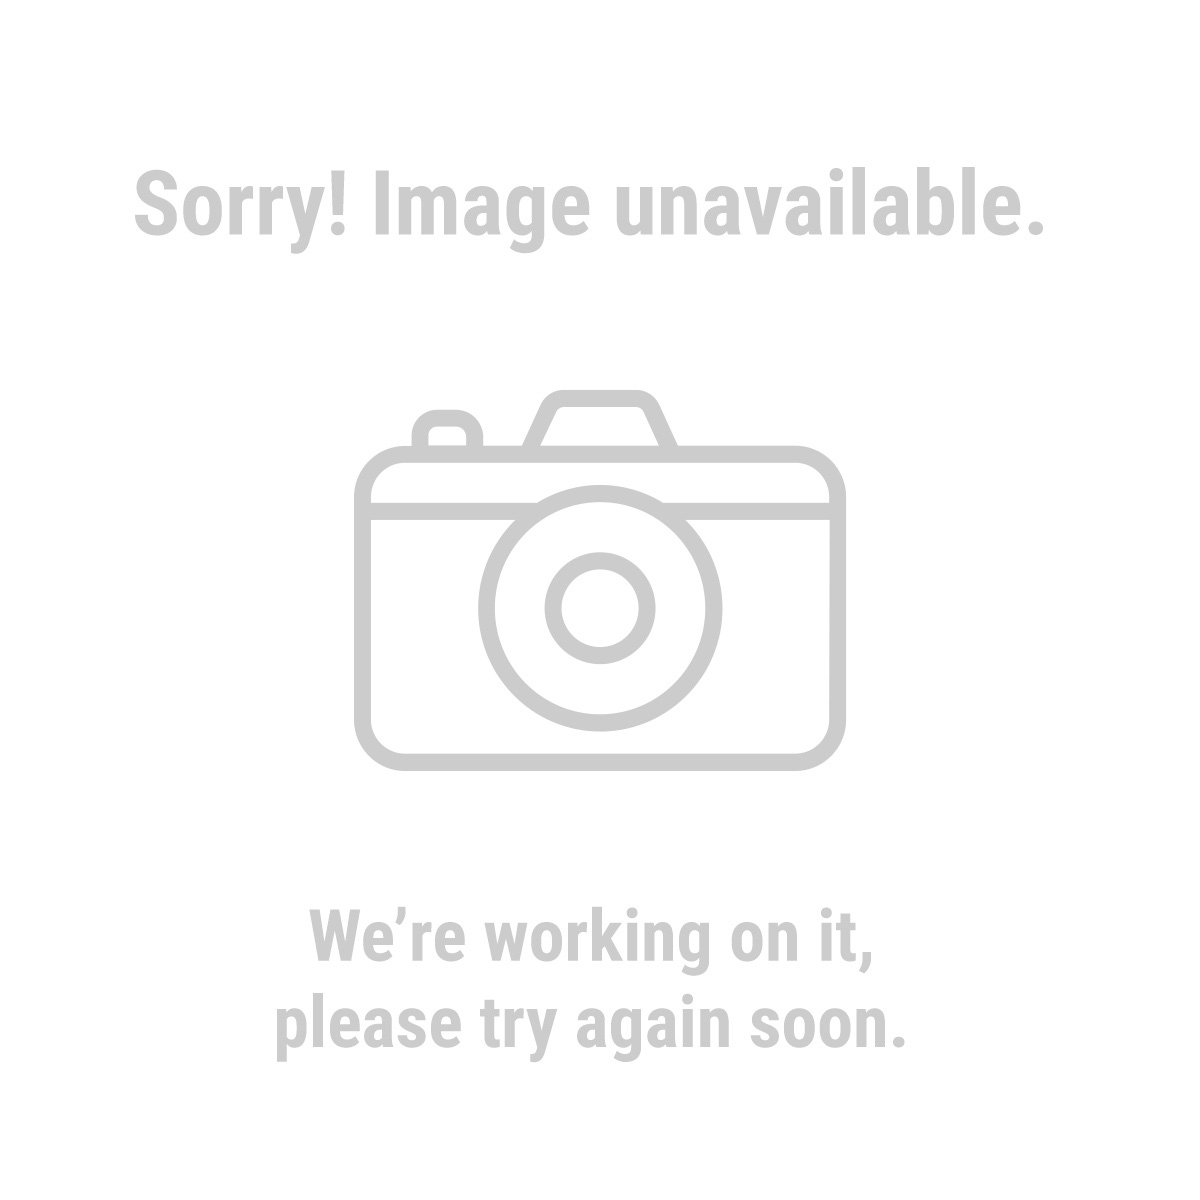 94717 Retractable Leash for Dogs Up To 110 Lbs.